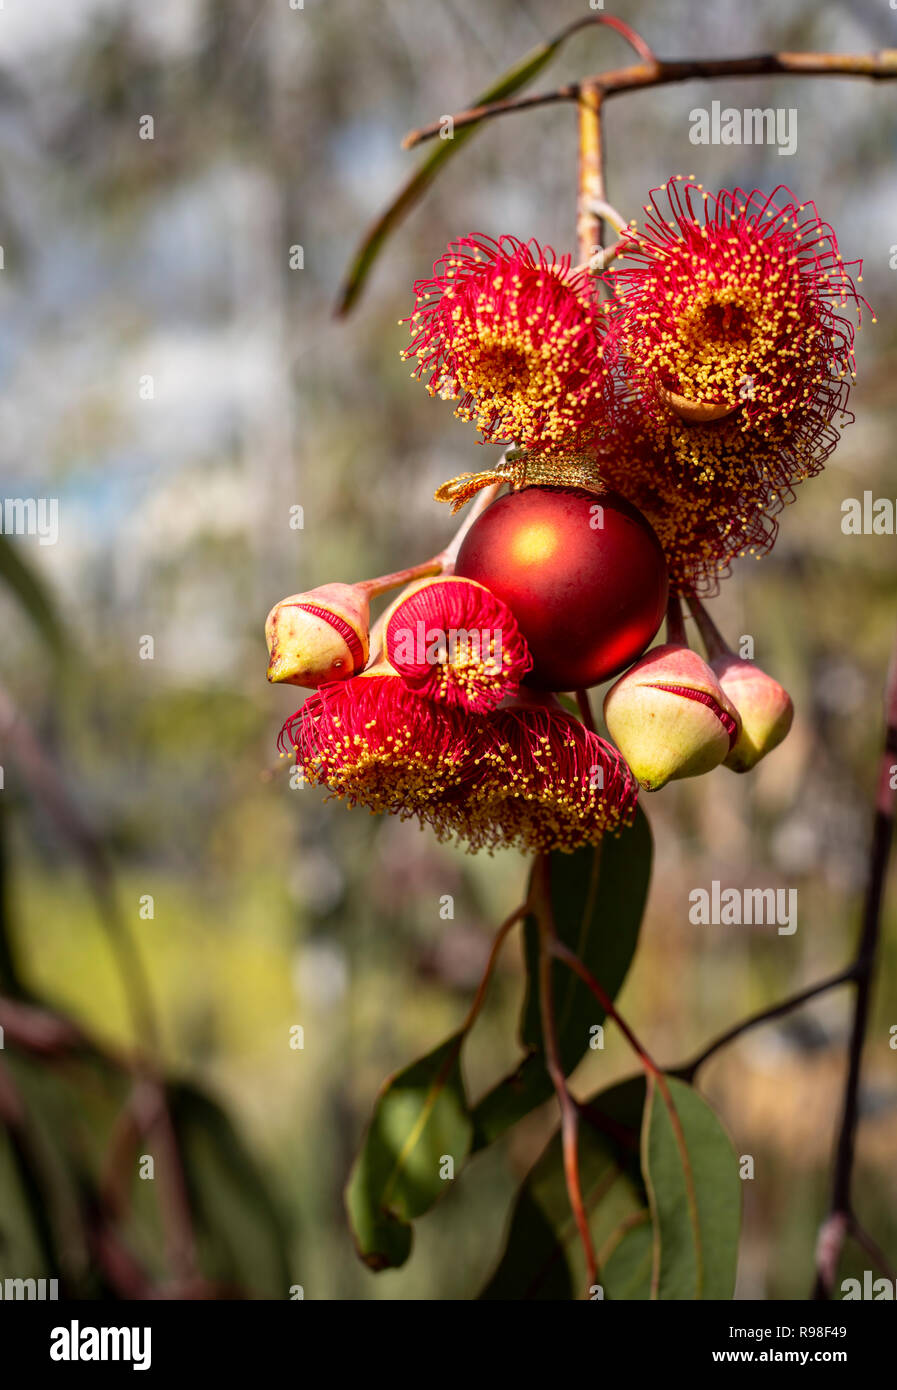 An Australian Christmas, gum nut blossoms and gum nuts with a red Christmas bauble, vertical - Stock Image